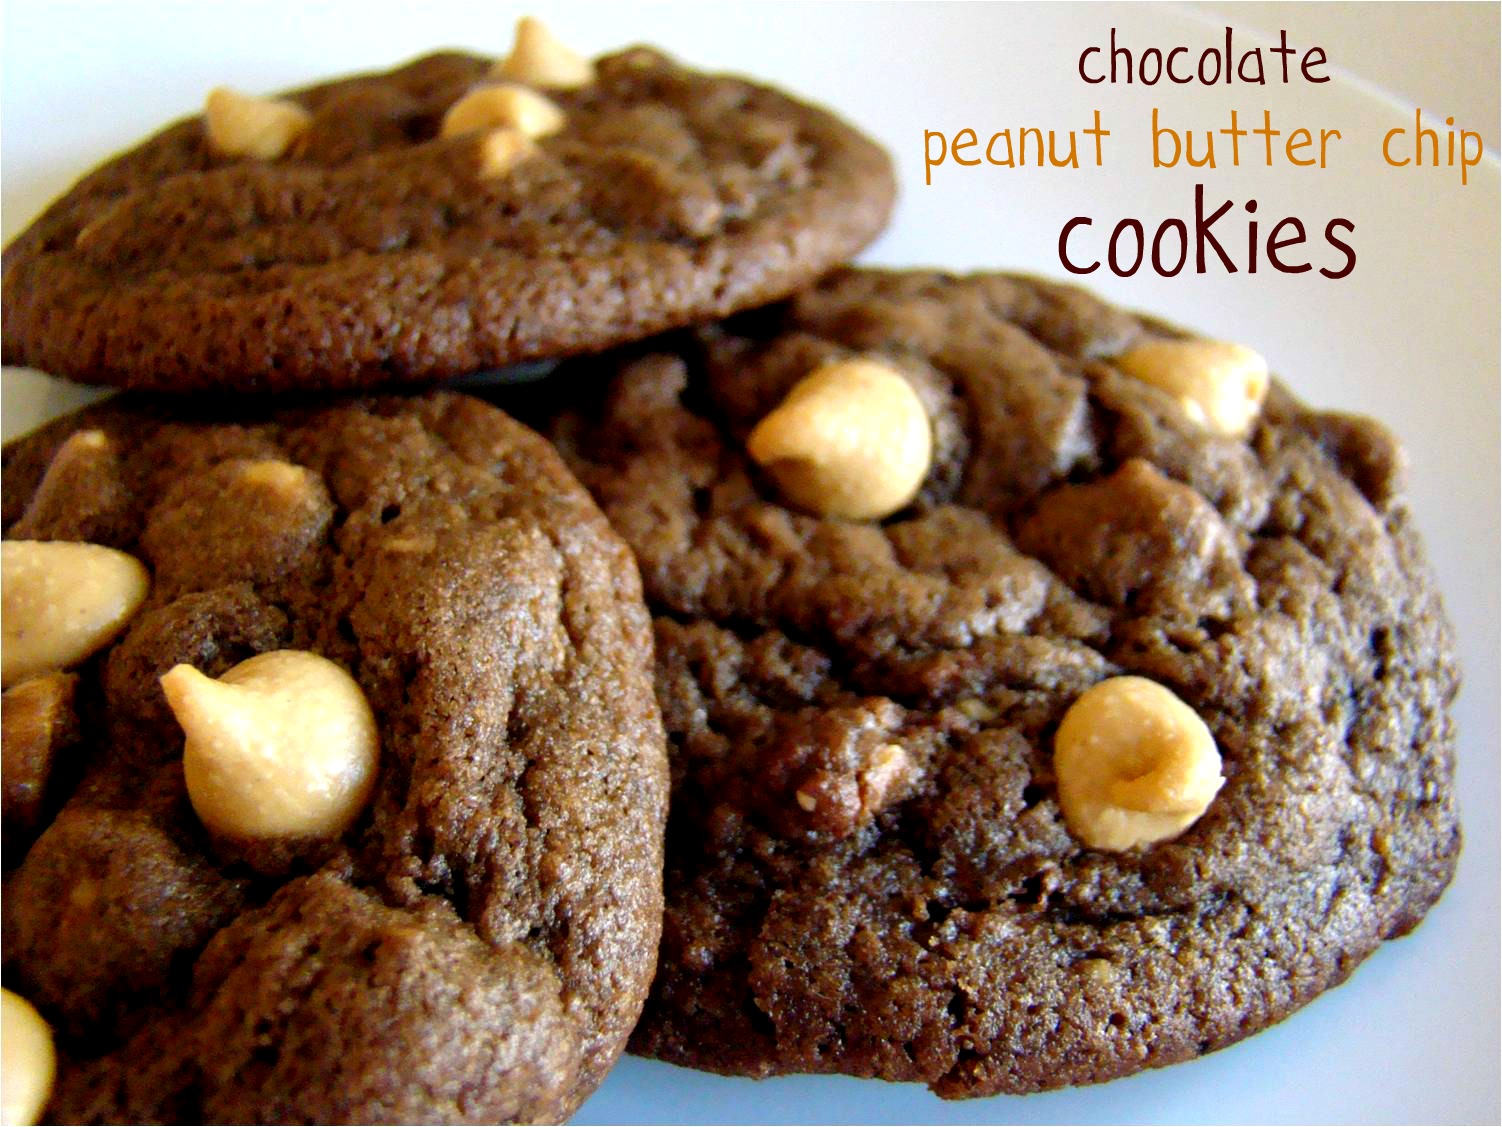 Family Feedbag: Chocolate peanut butter chip cookies